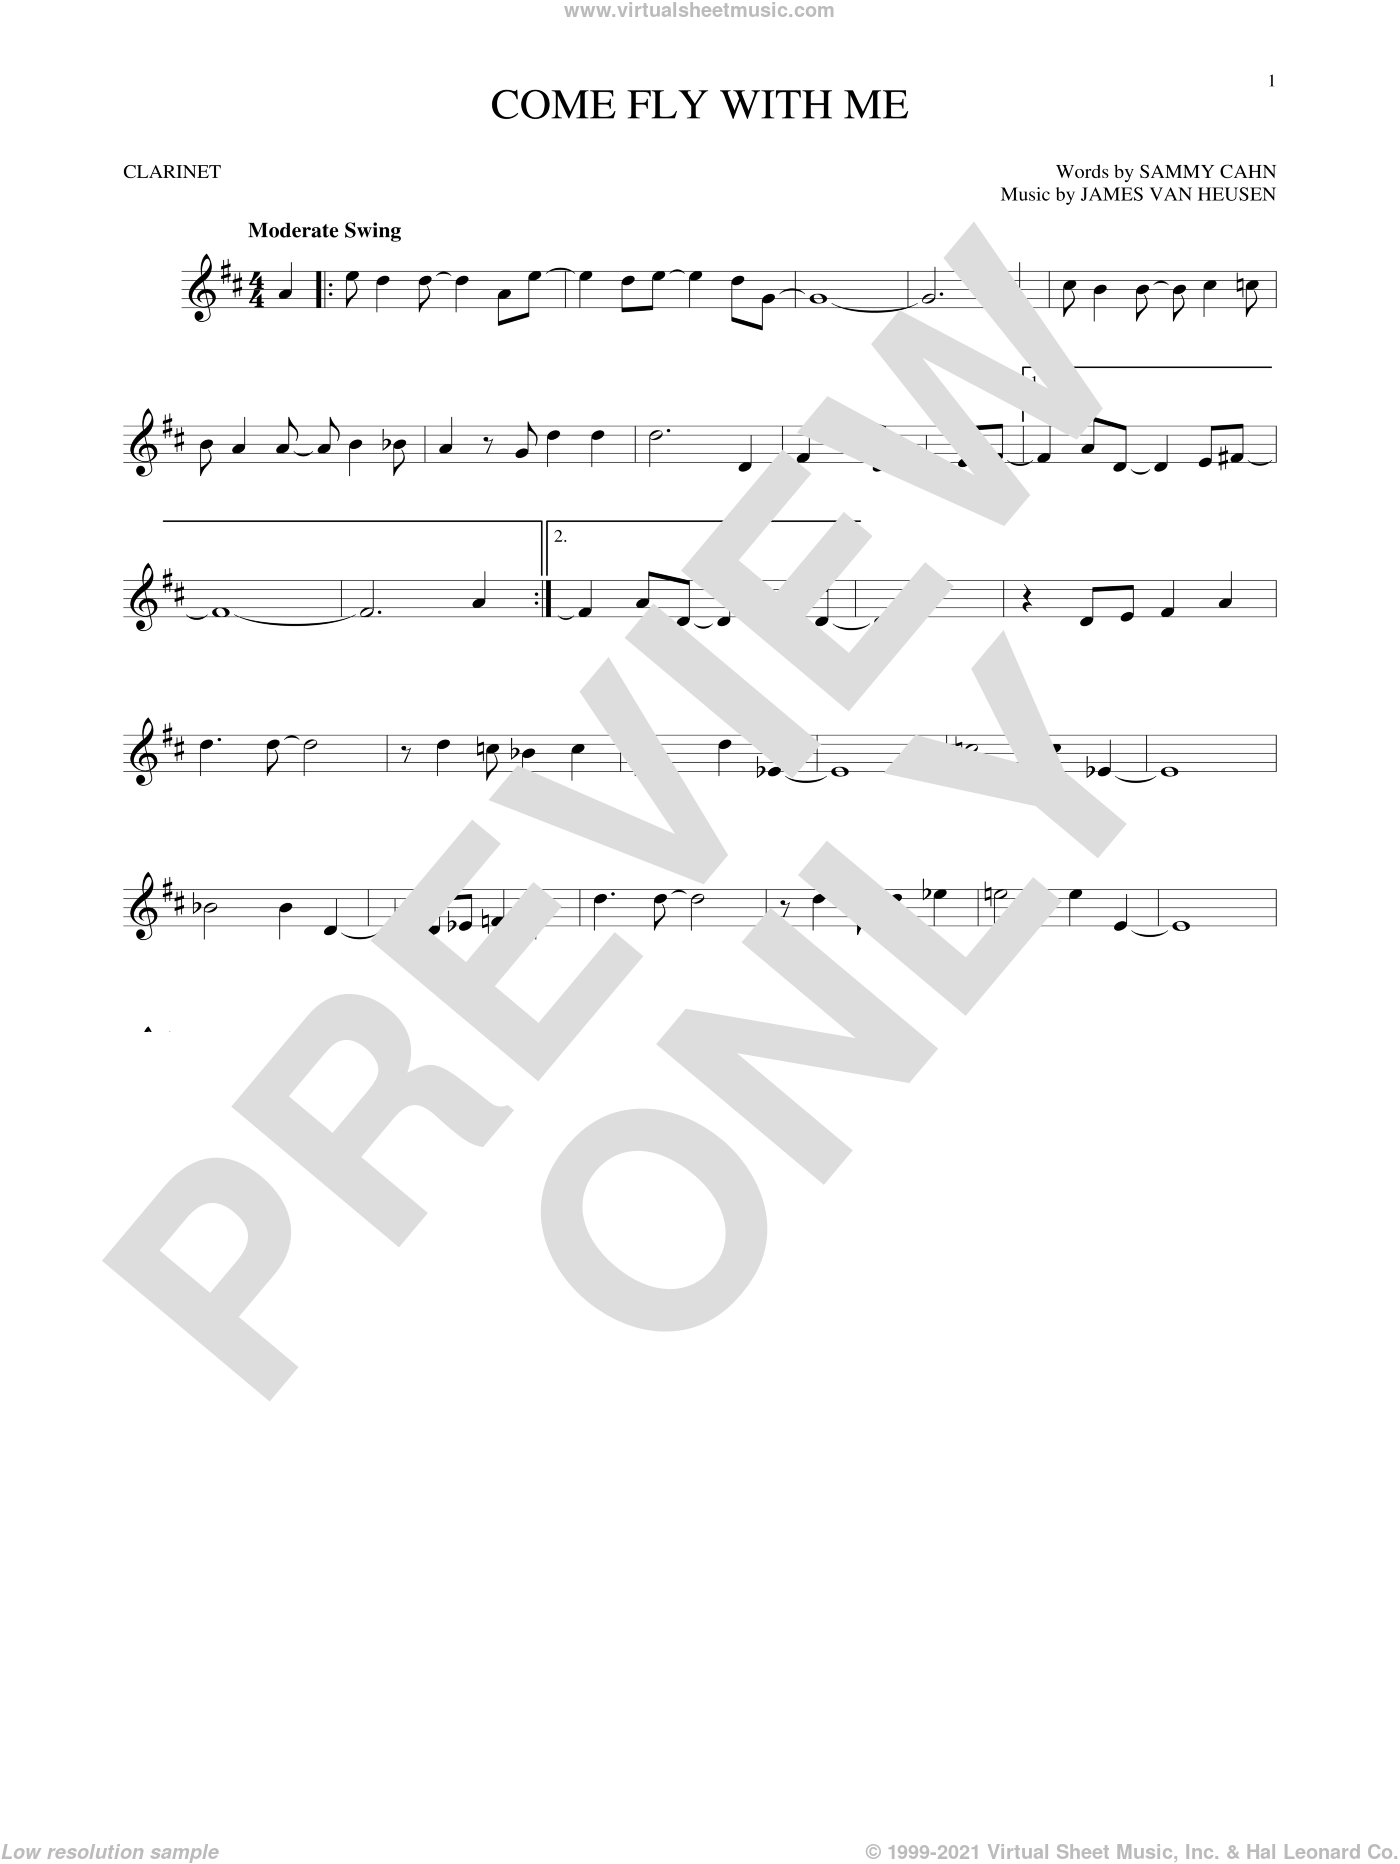 Come Fly With Me sheet music for clarinet solo by Sammy Cahn, Jimmy van Heusen and Sammy Cahn & James Van Heusen, intermediate skill level